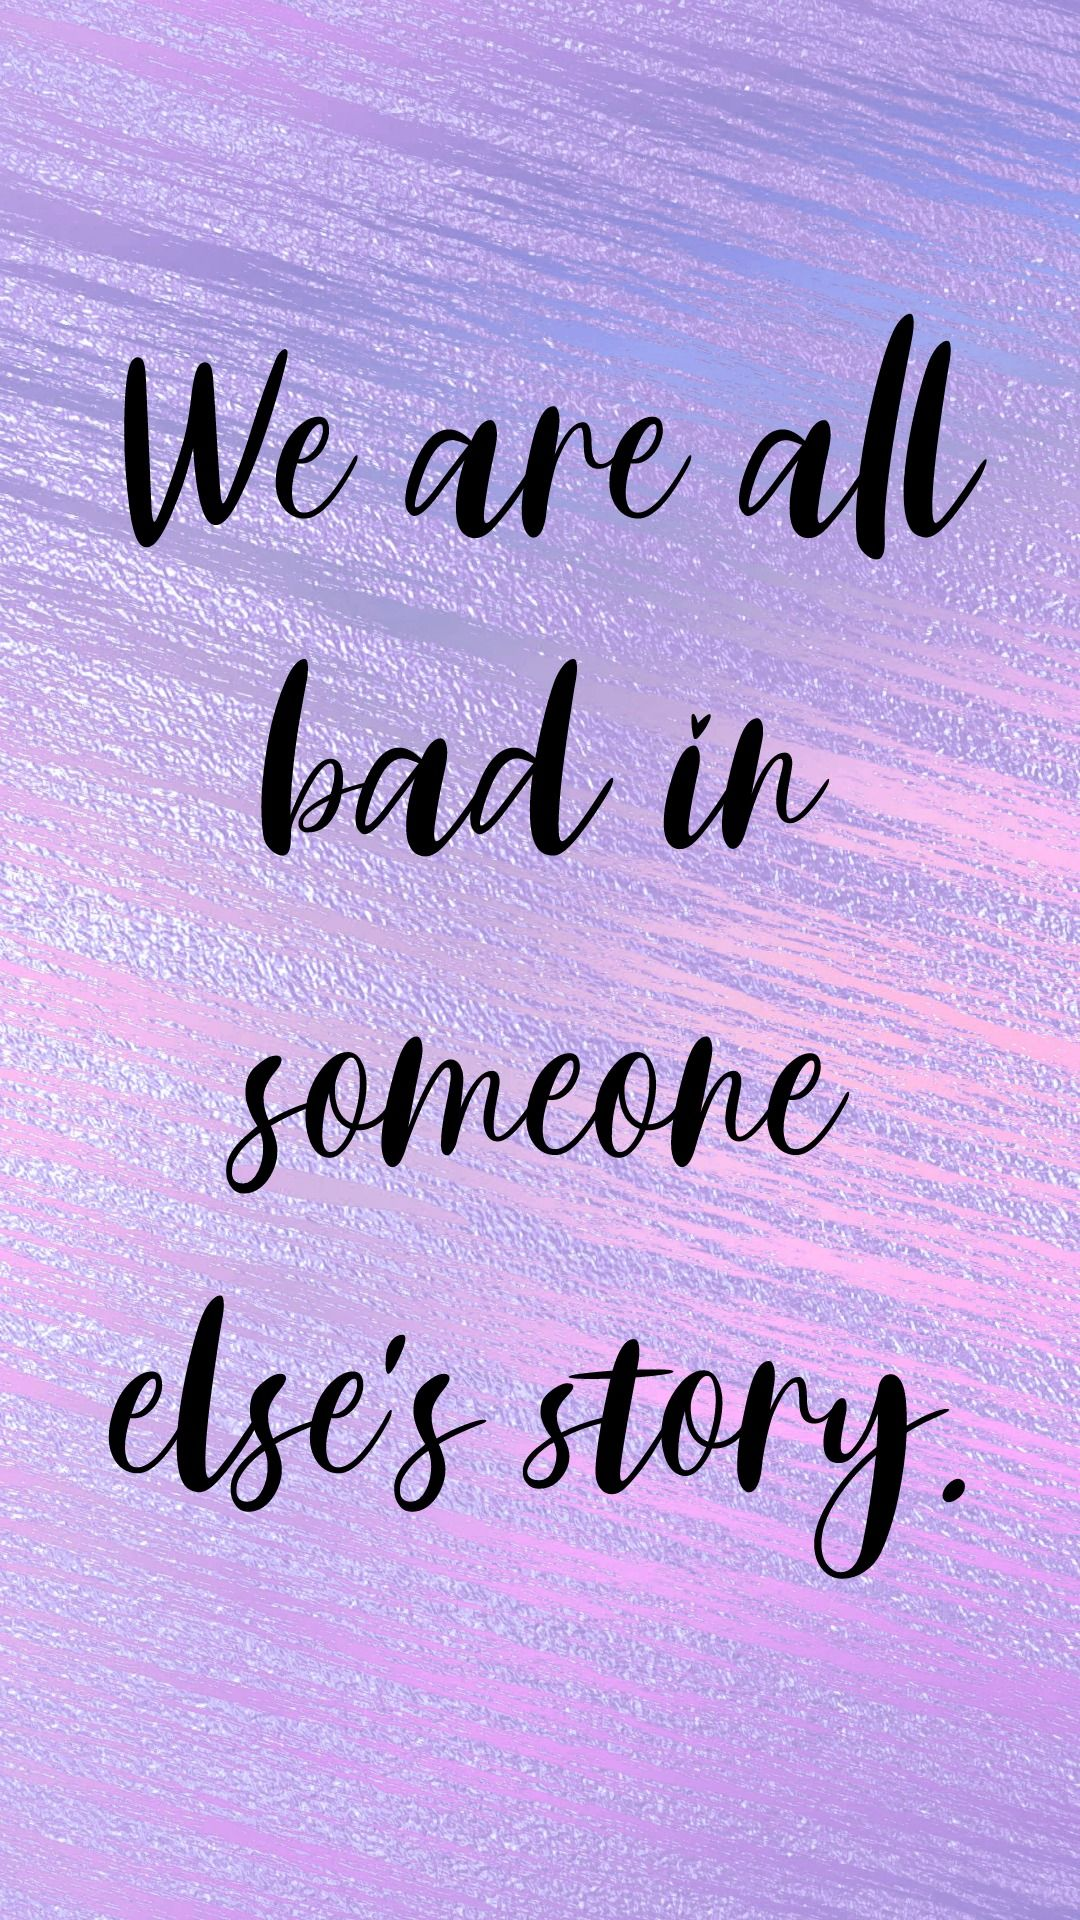 phone wallpaper, phone background, quotes to live by, free phone wallpapers, inspiring quotes, motivating quotes, girly quotes and inspiration